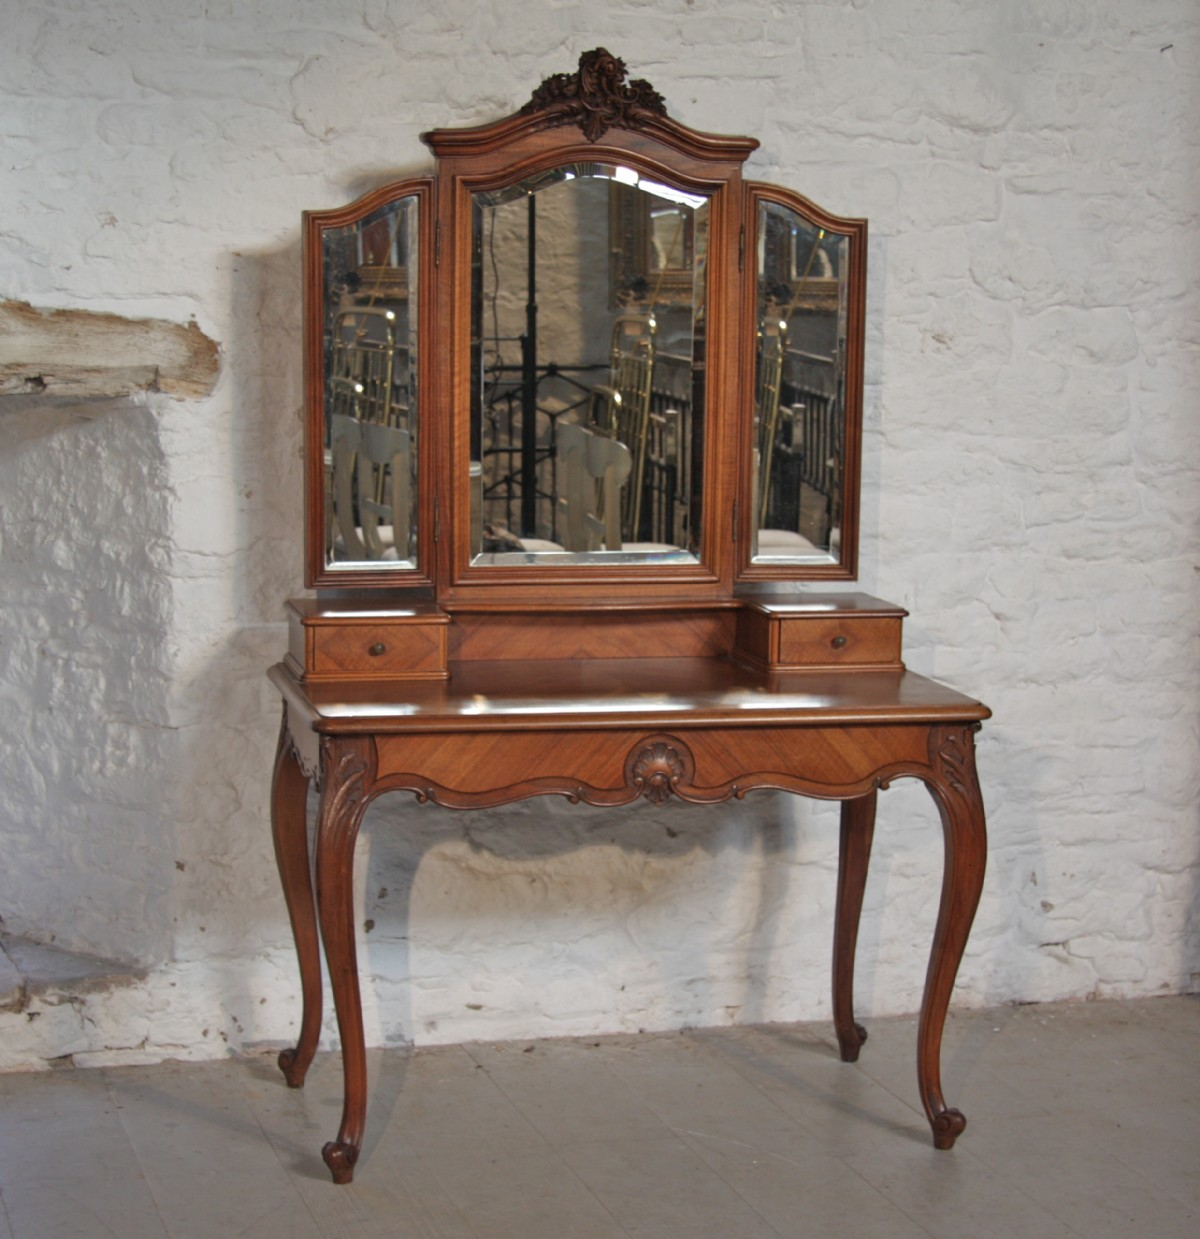 Antique dressing table with mirror - Louis Xv1 Fench Walnut Dressing Table With Triple Mirrors Antique Photo